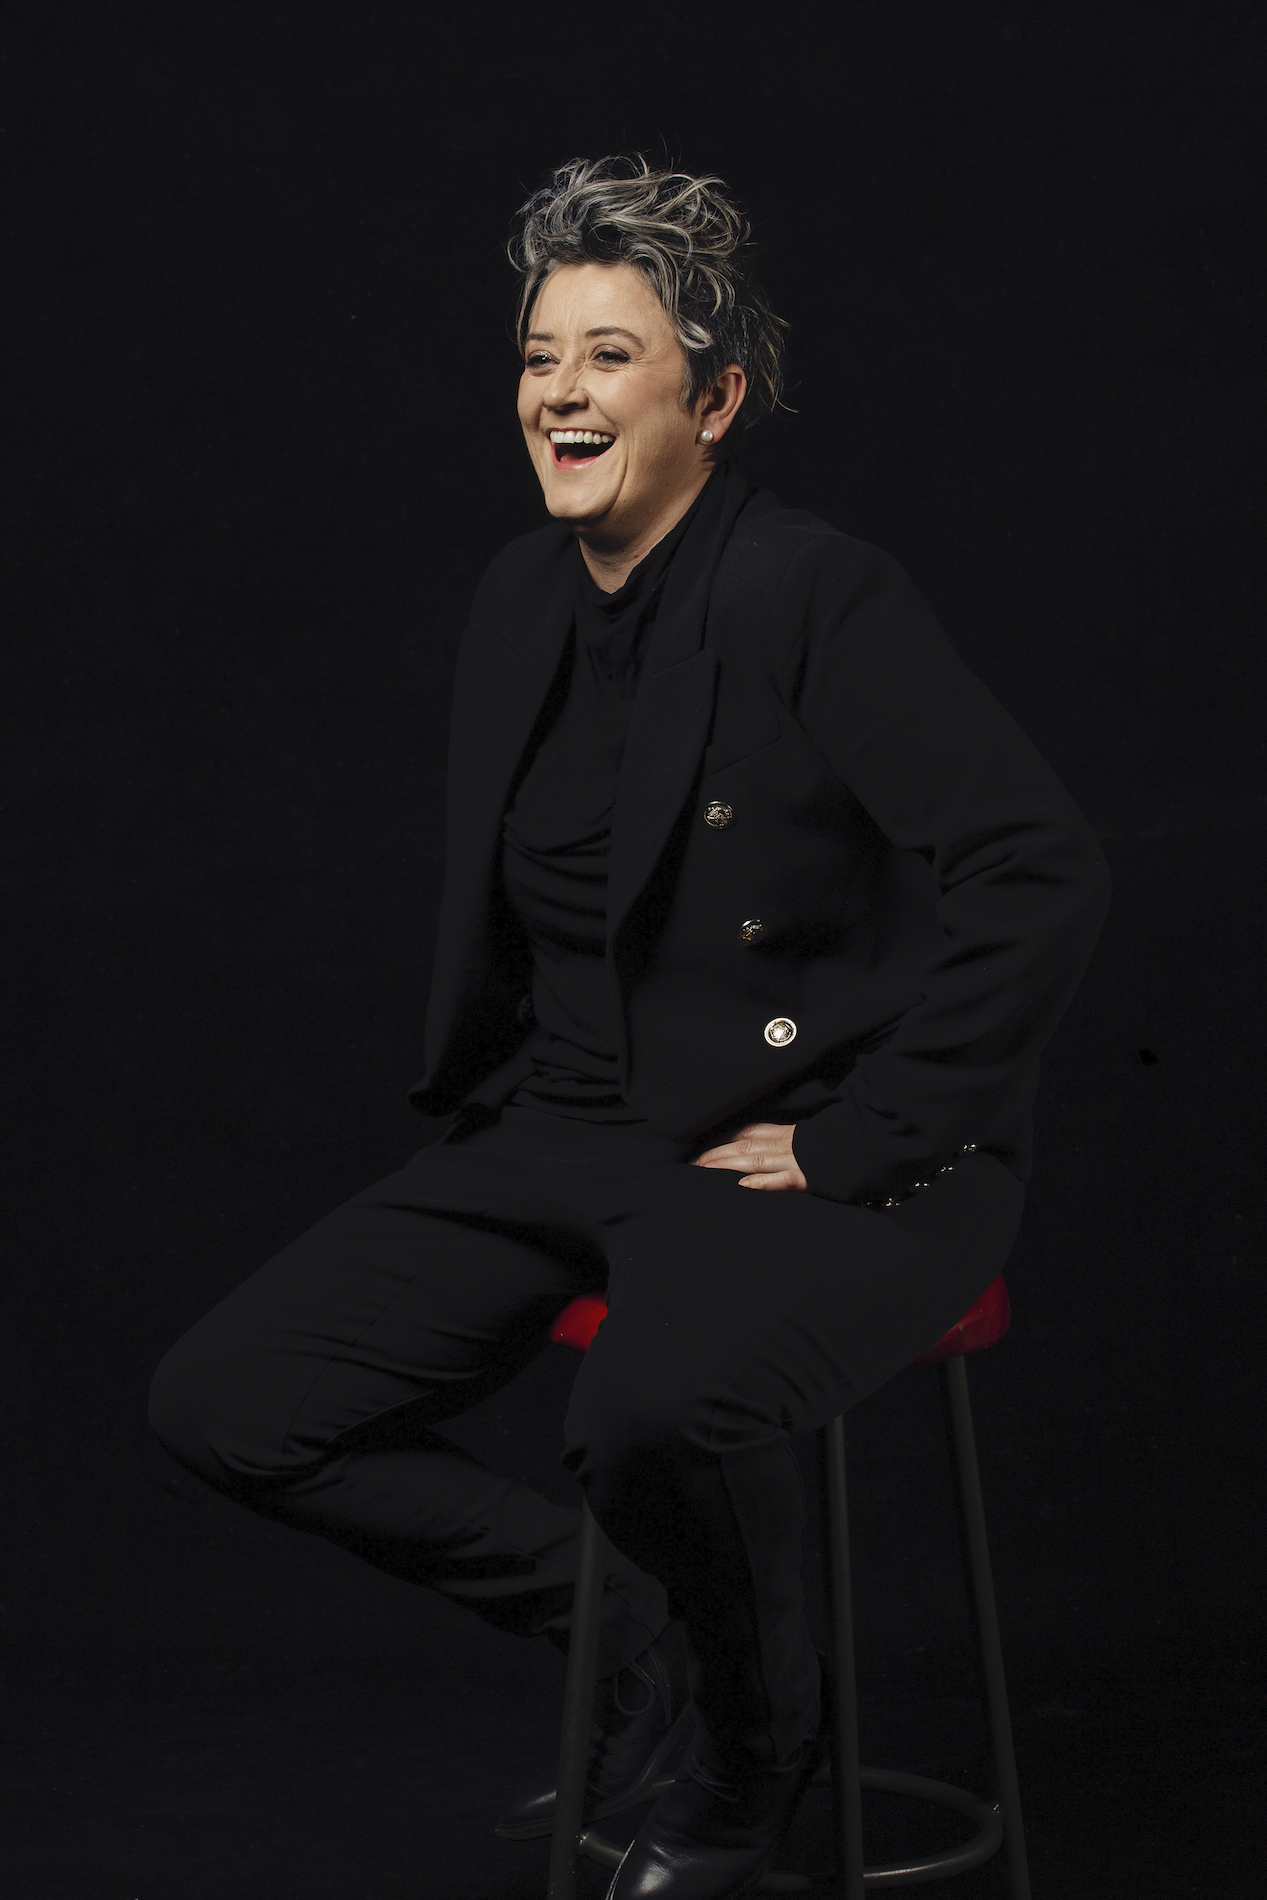 Chris Ryan, sitting on a stool dressed all in black with a black background, laughing